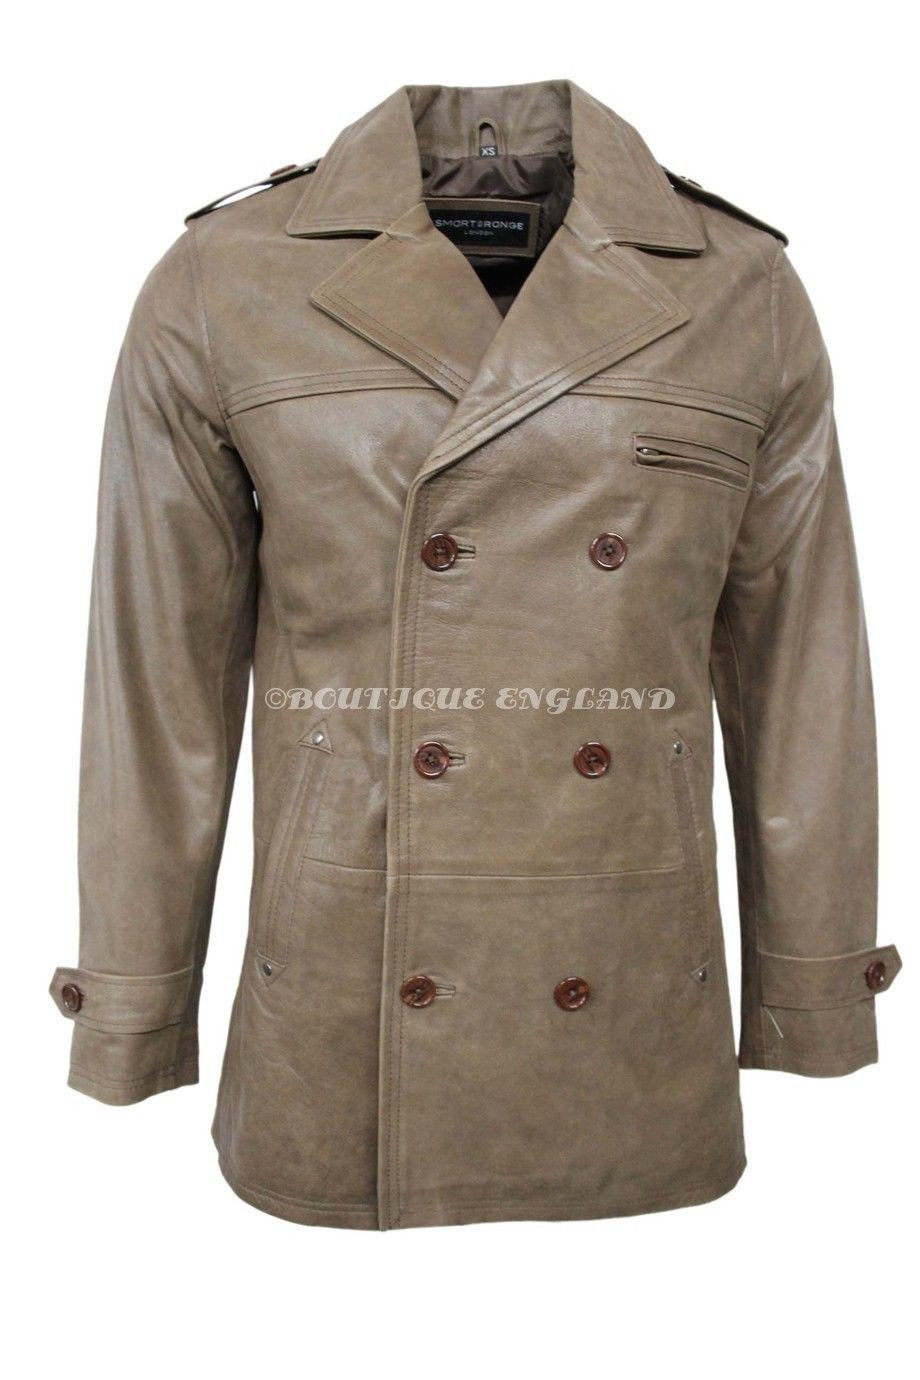 Men/'s PEA COAT Khaki Dr Who REAL COWHIDE Classic Reefer Military Leather Jacket